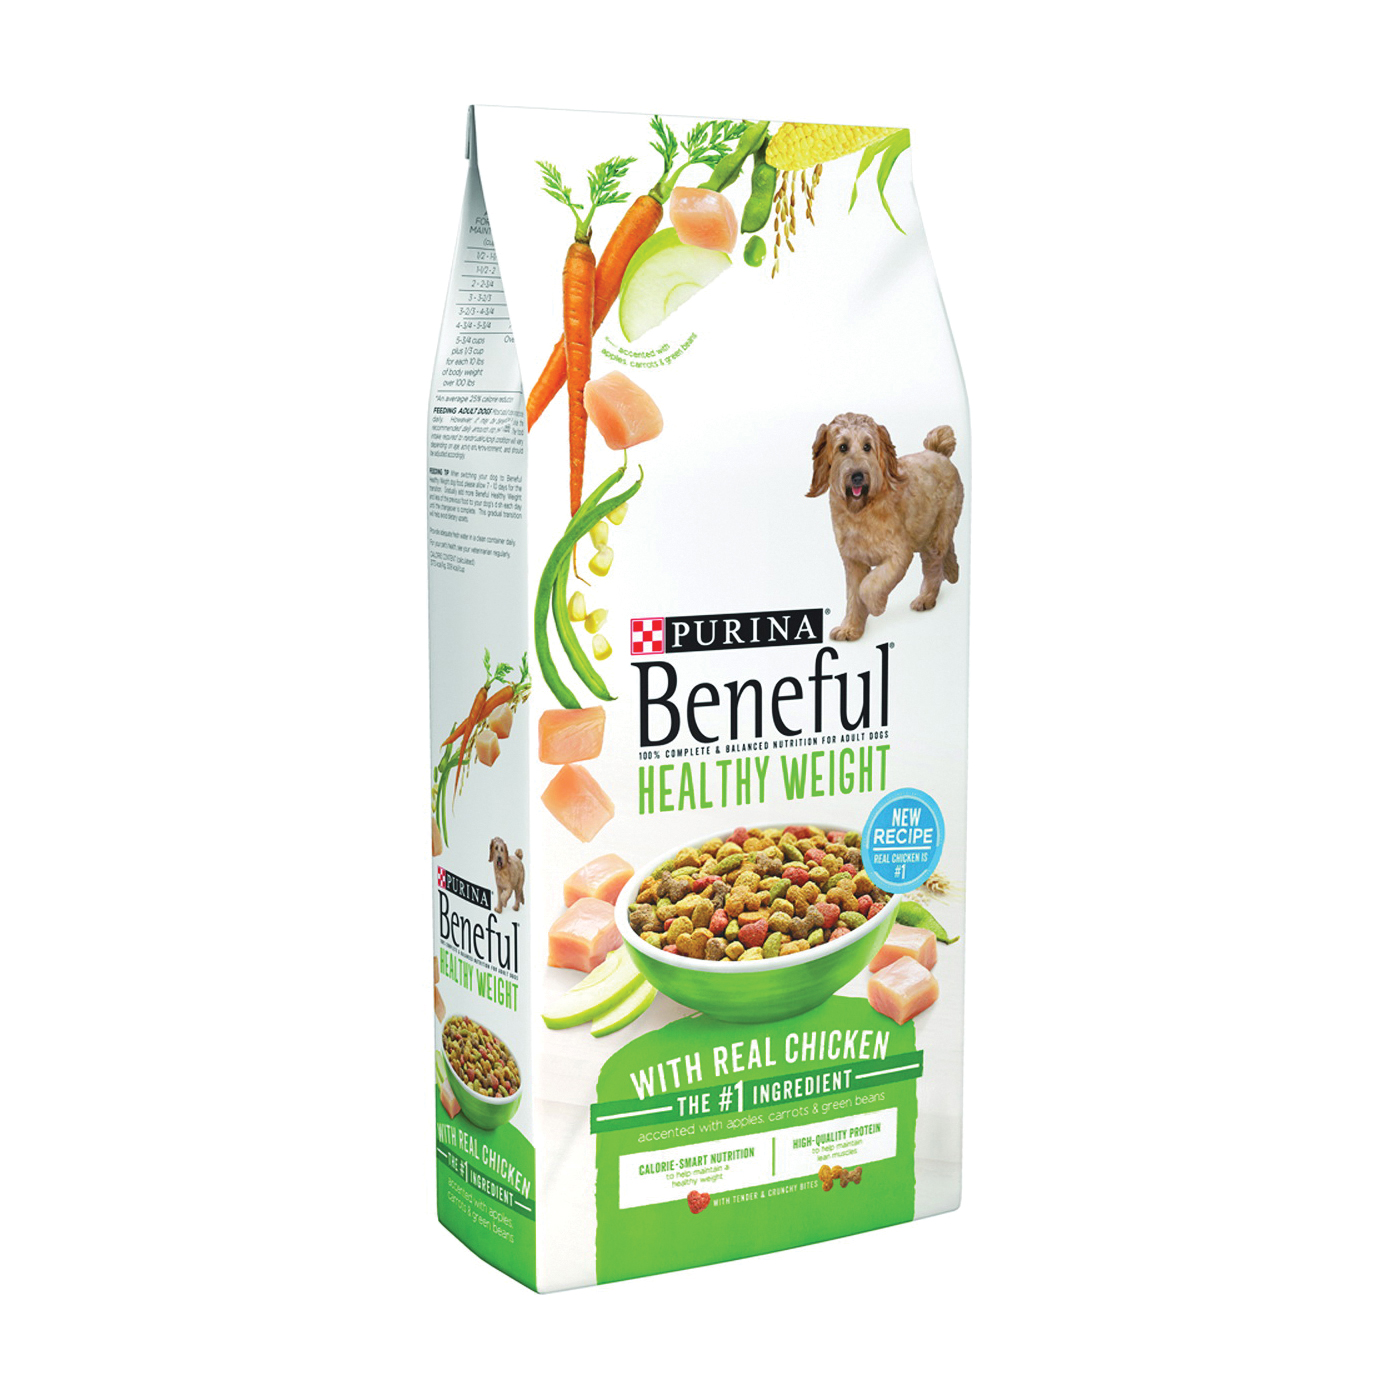 Picture of Beneful 1780013467 Dog Food, 3.5 lb Package, Bag